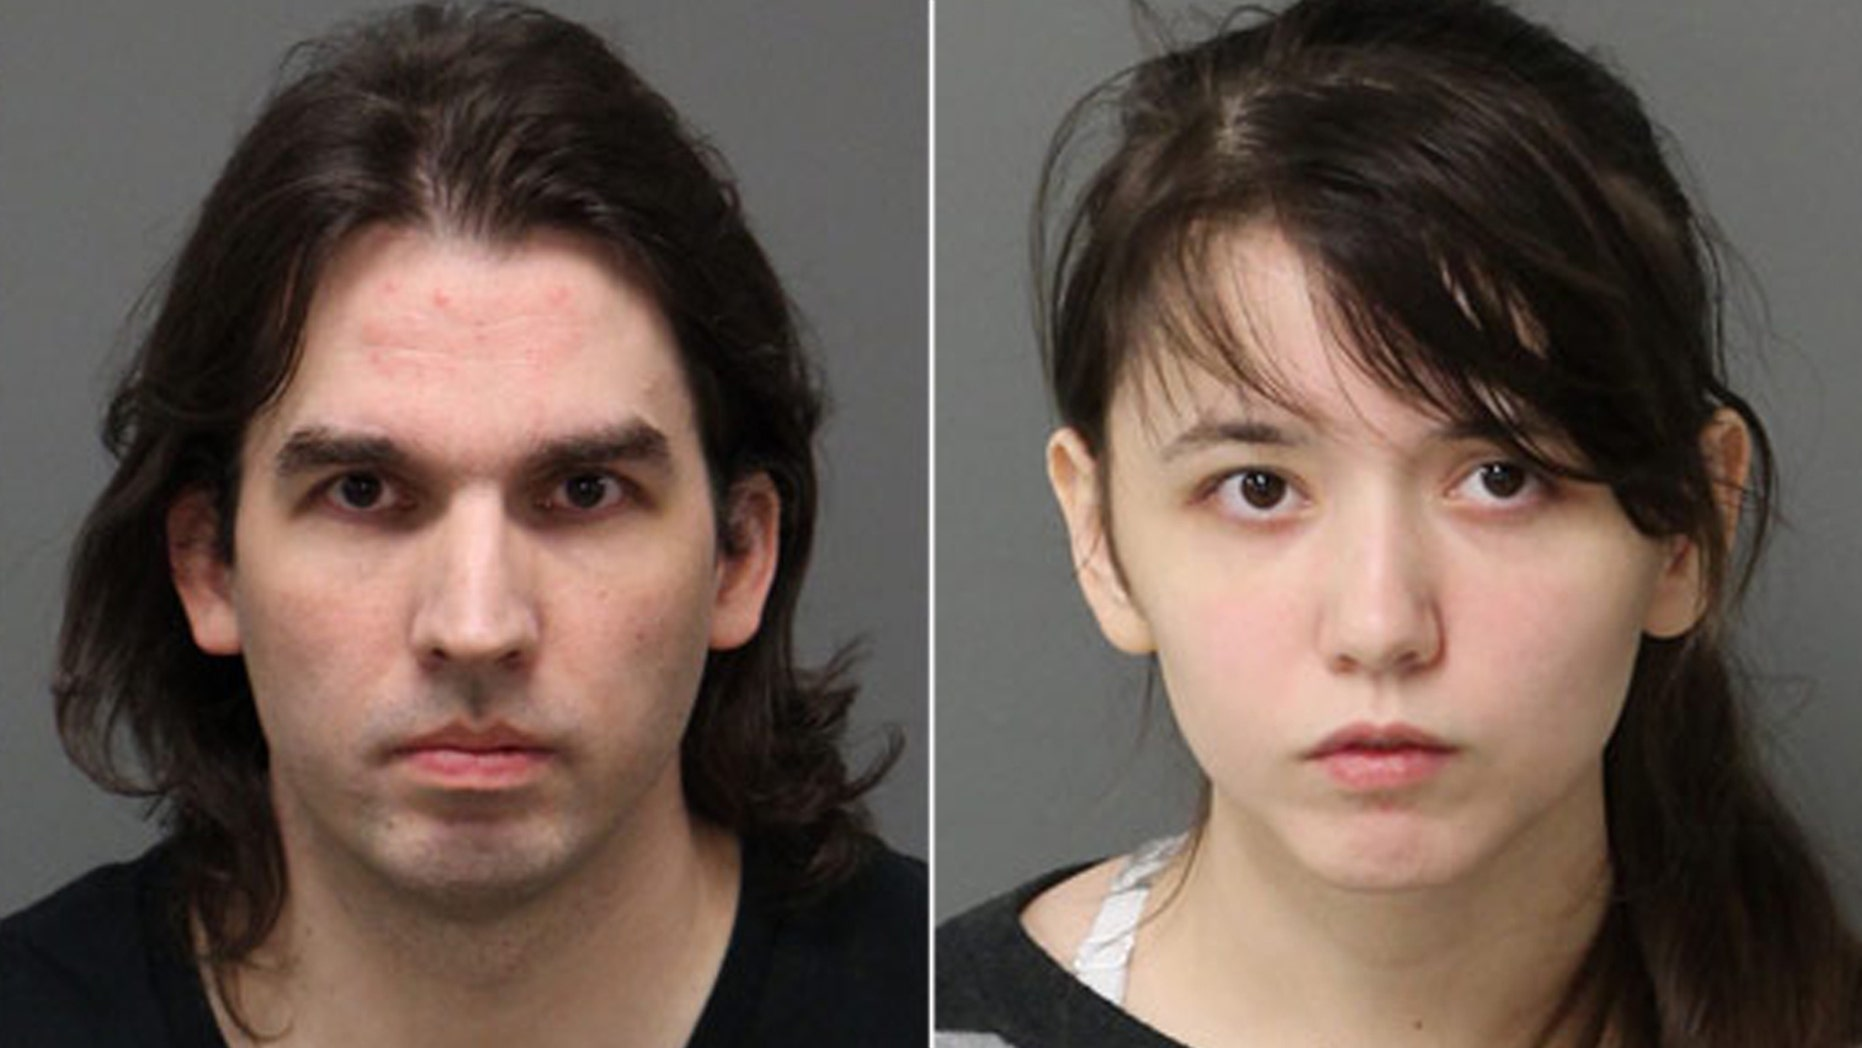 North Carolina father daughter couple arrested for incest after